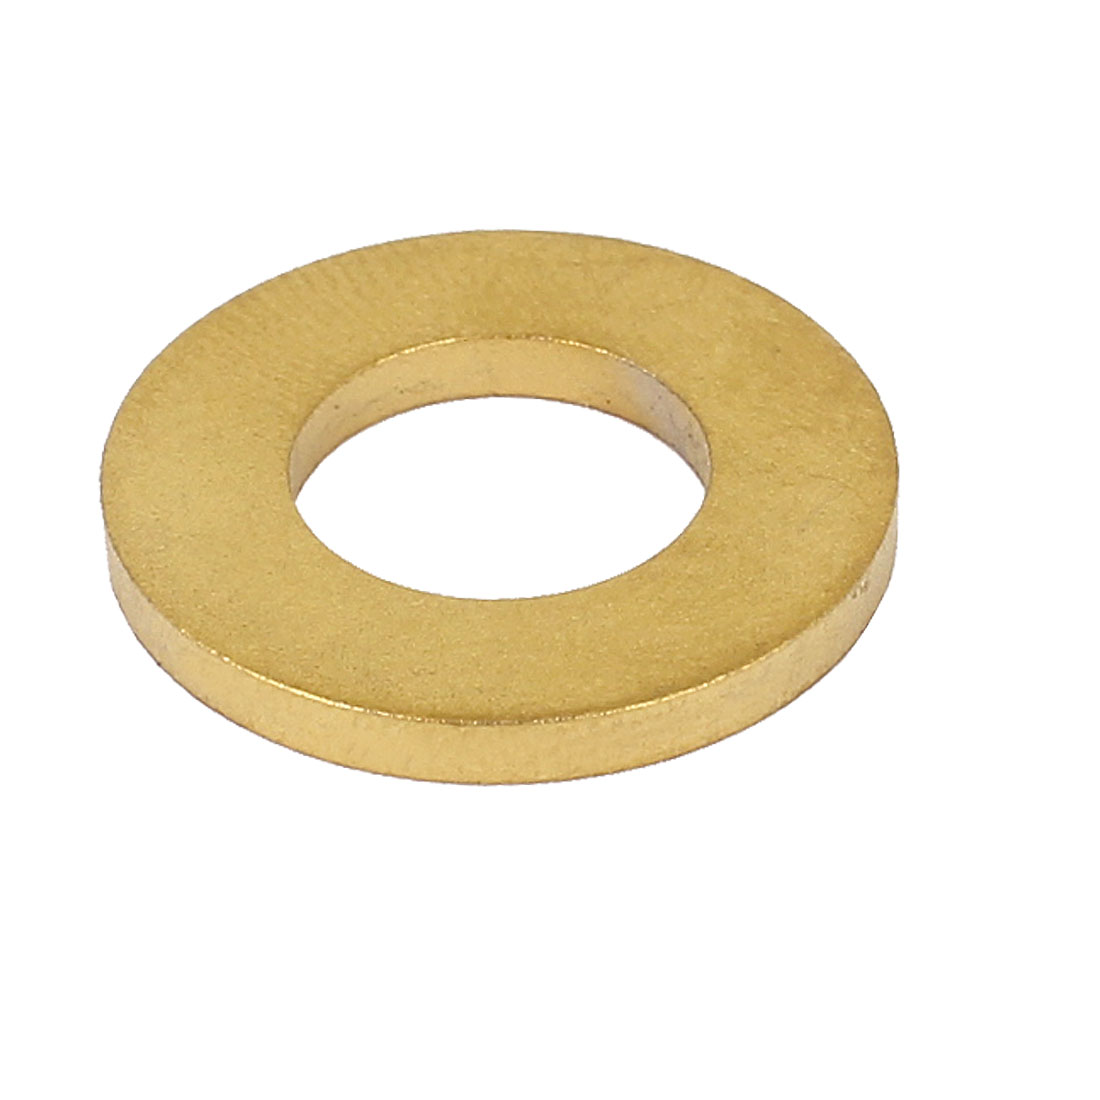 M10 Gold Tone Titanium Ti Flat Spacer Washer for Bicycle Cycling Motorcycle Car